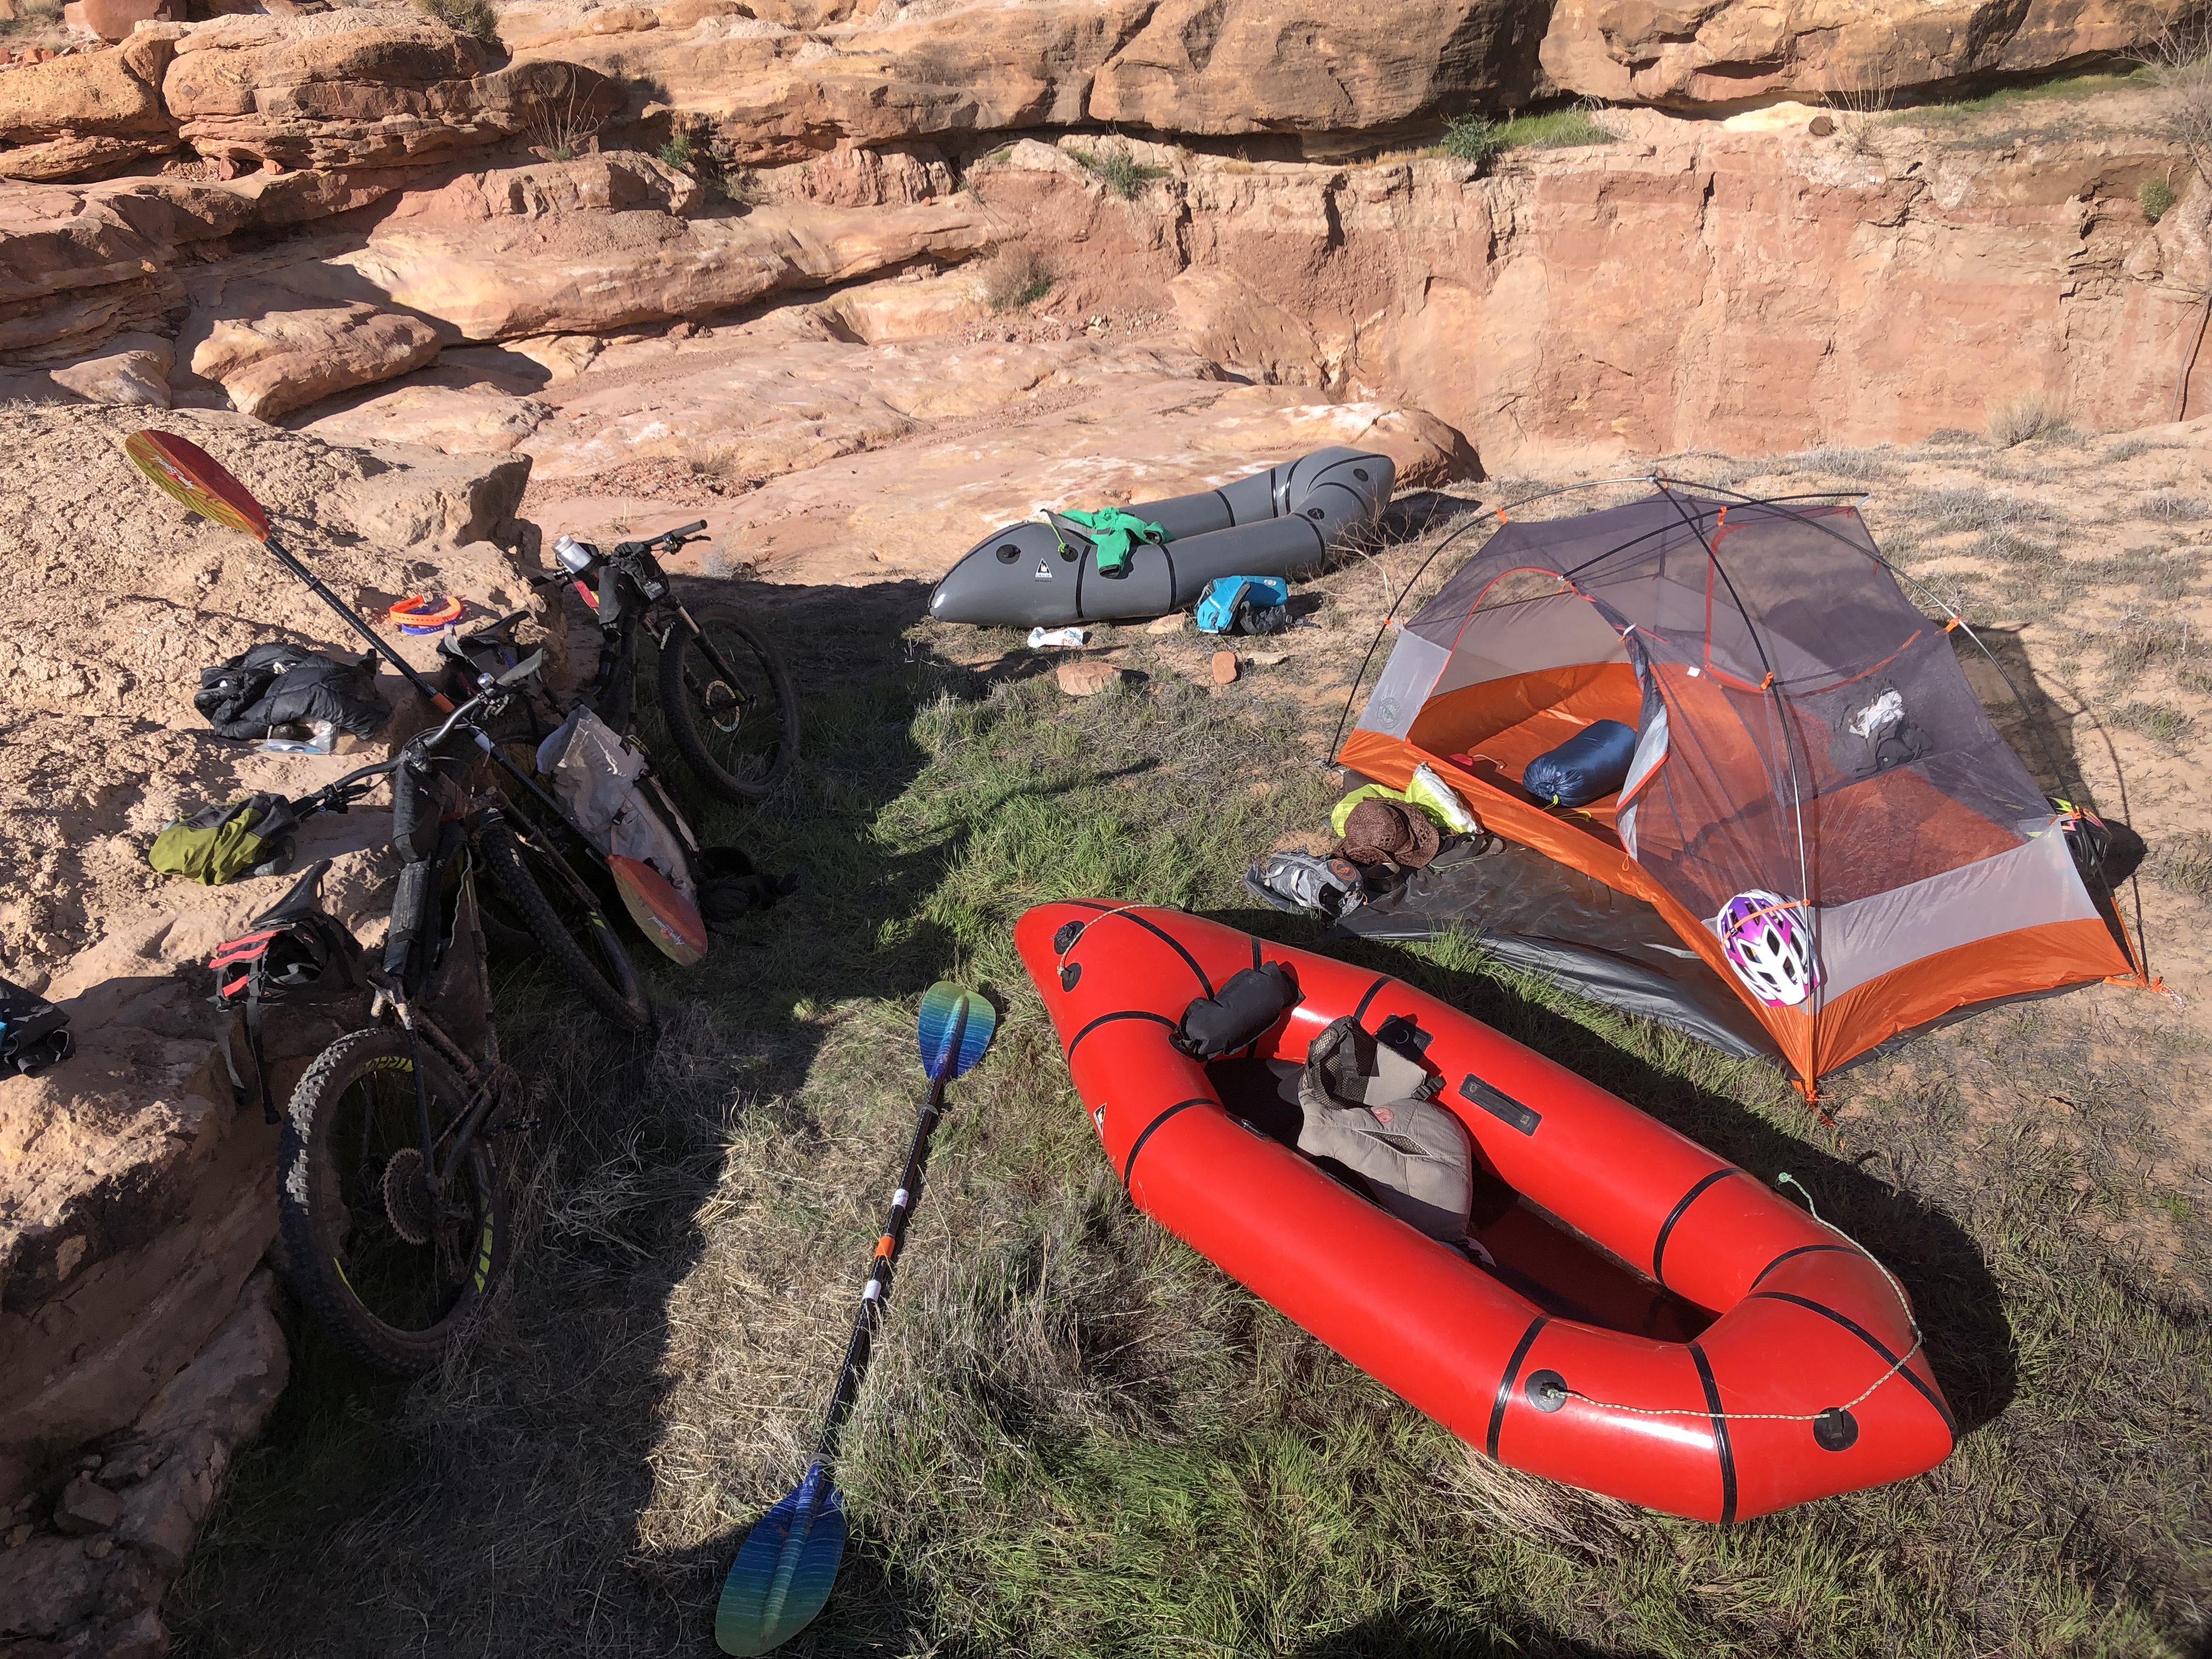 The bikeraft kit for a two-day Southern Utah adventure.